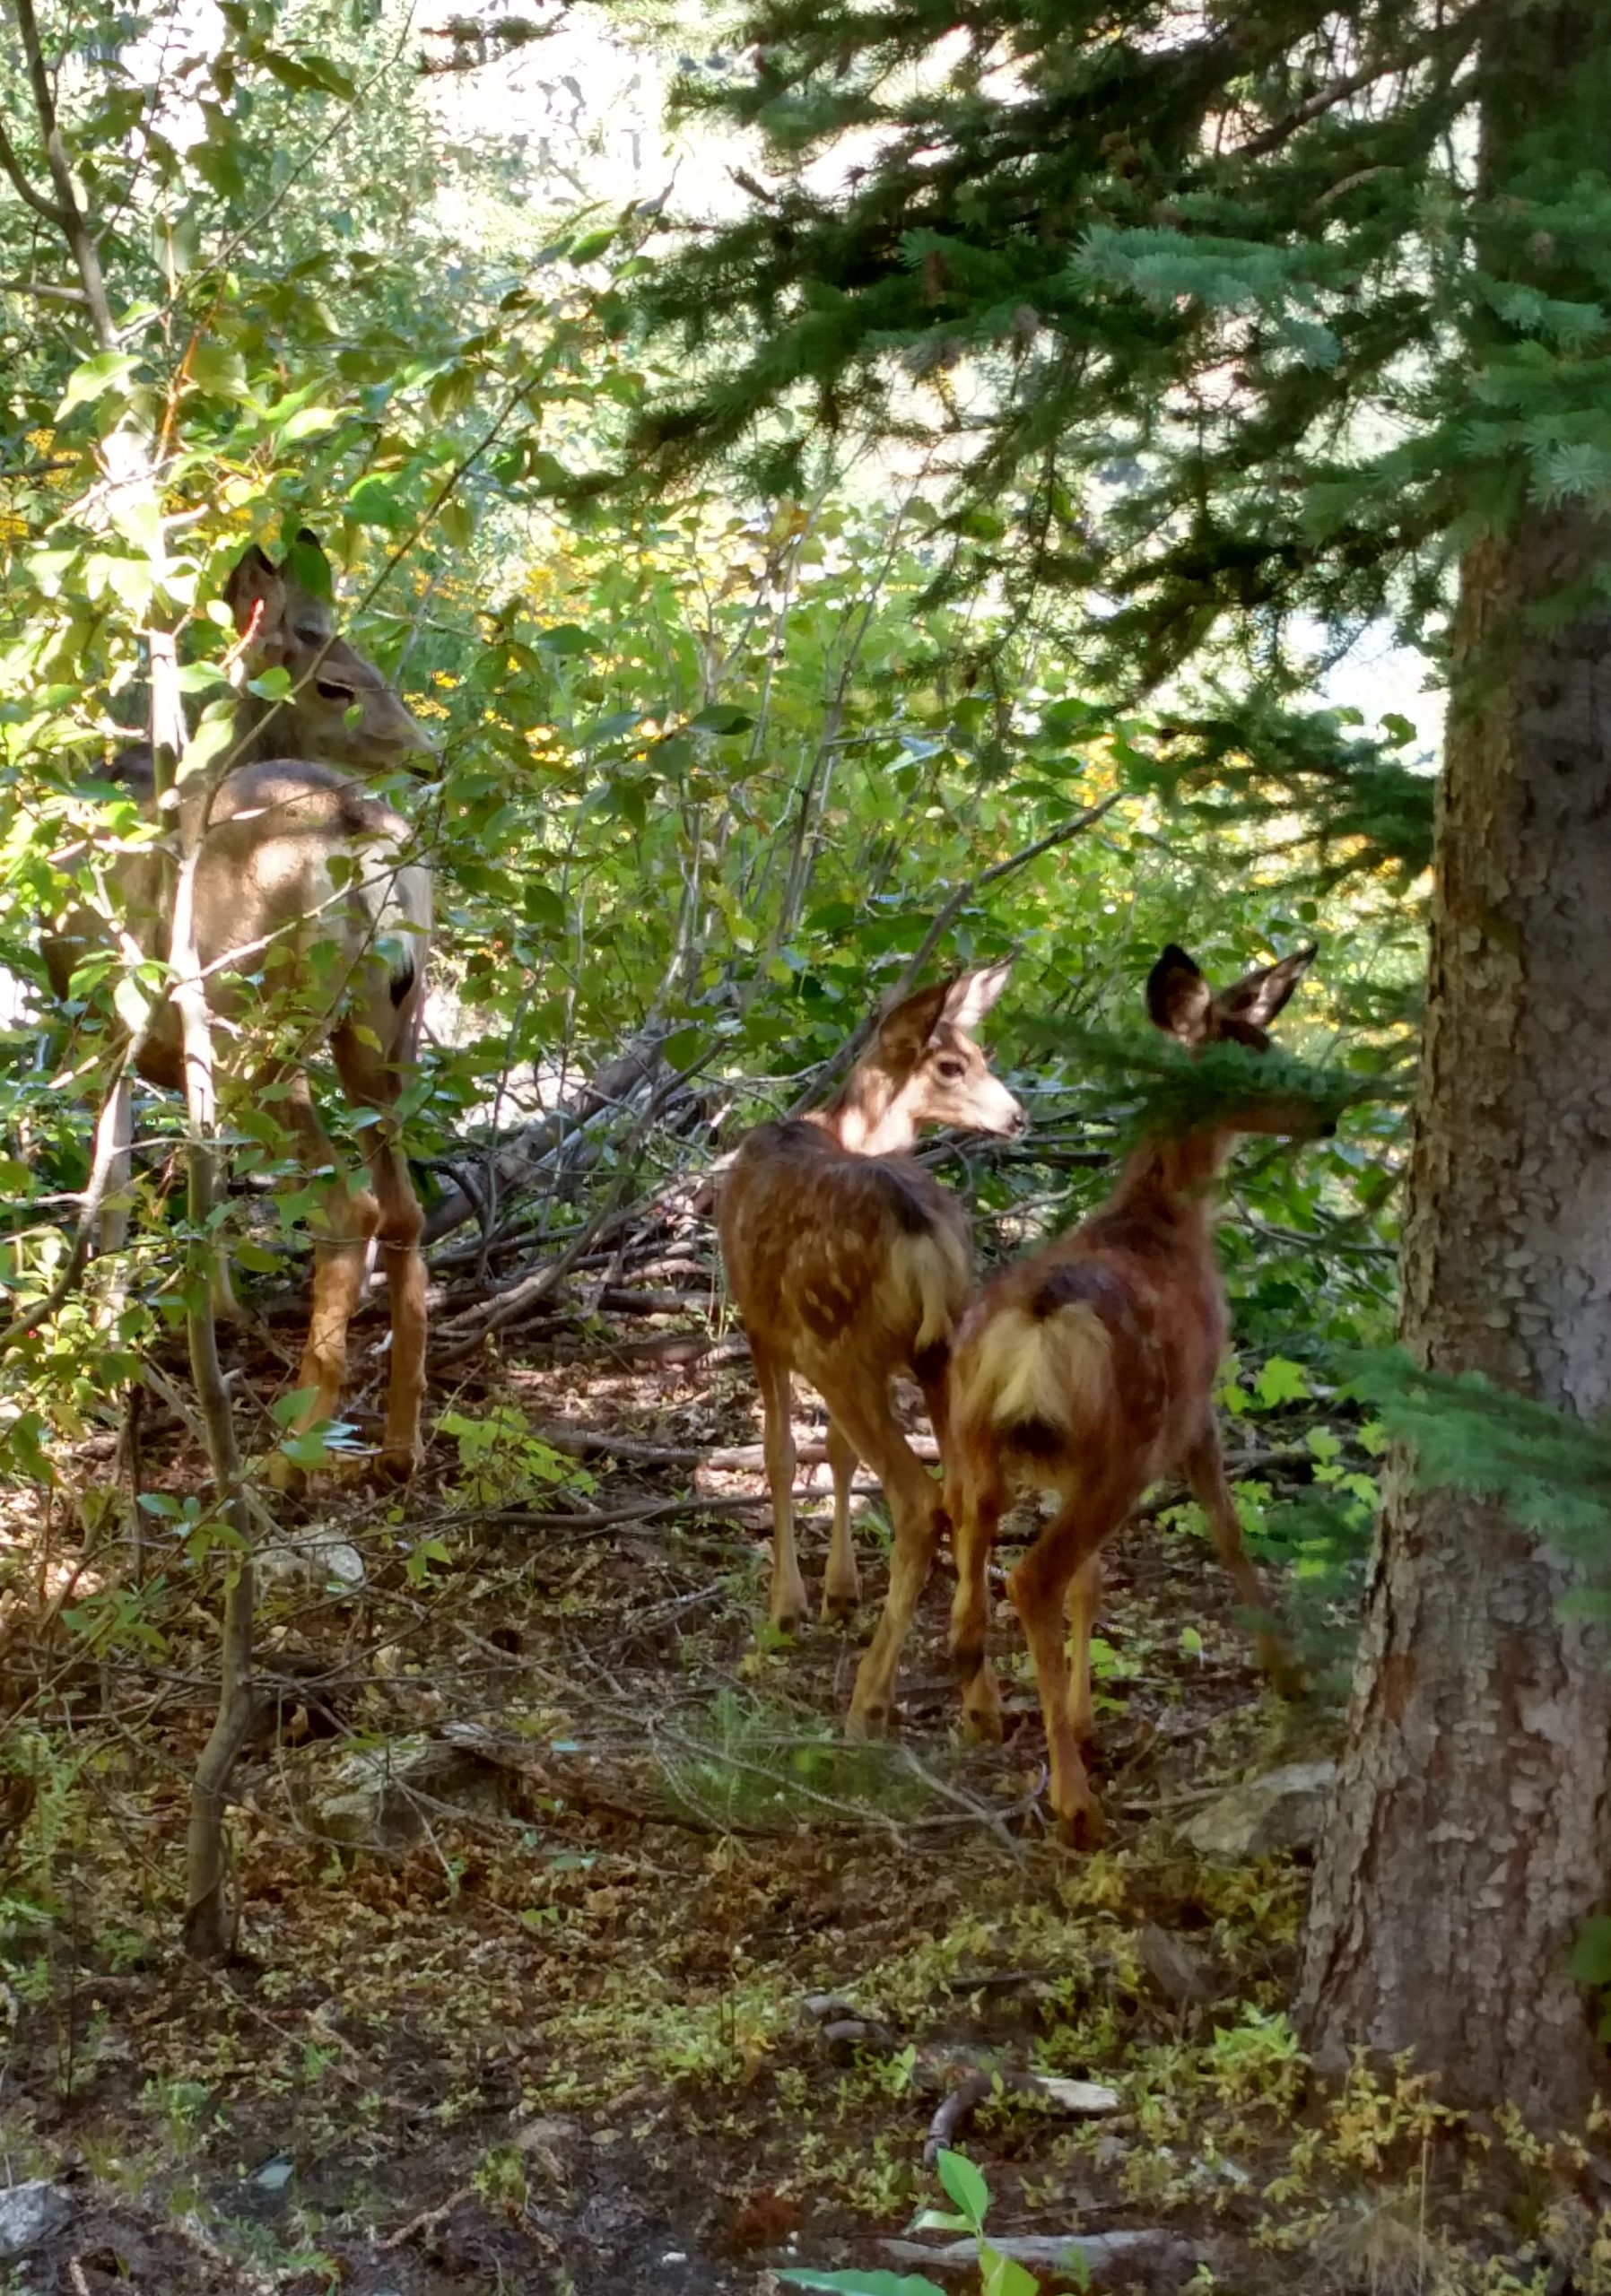 three mule deer in a sun dappled wooded area